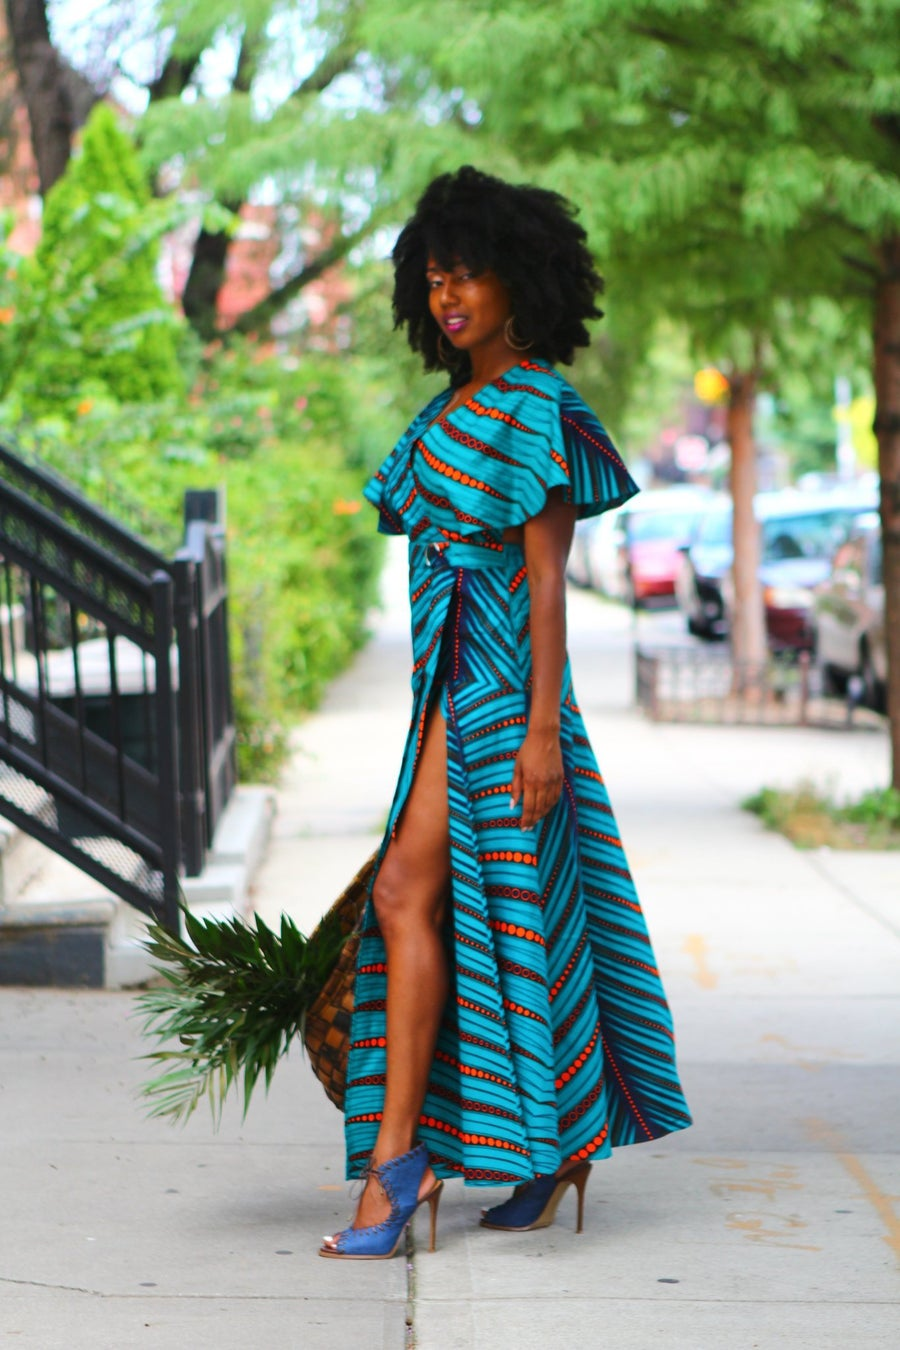 Image of CAPE DRESS - Teal Orange African Ankara Wax Print Dress - 2 Fabric Choices